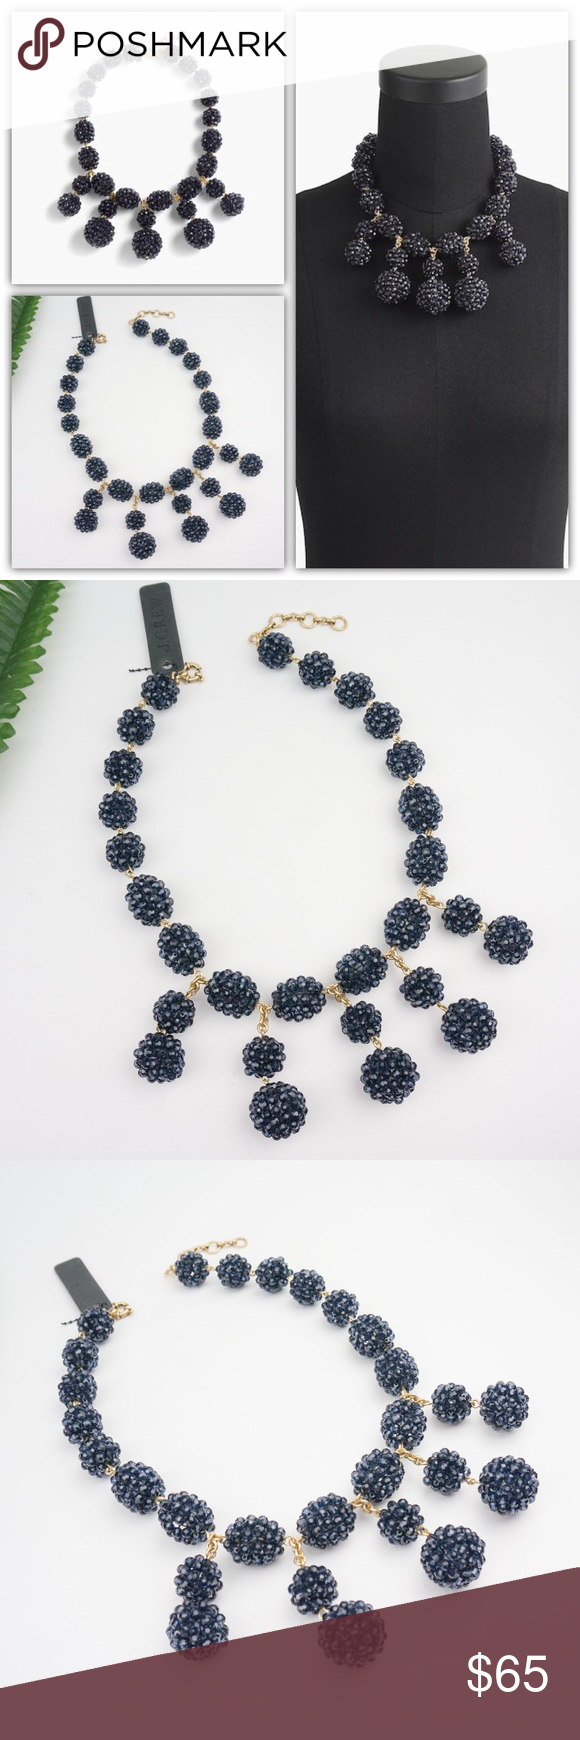 "J.Crew Blackberry Statement Necklace Brand new. Sold out online  Dark blue beaded baubles make this necklace a standout. * Glass beads, acrylic beads, SSR closure, logo tag with cubic zirconia. * Import. * Item H4249. Size:  Length: 18 1/2"" with a 2 1/2"" extender chain for adjustable length. J. Crew Jewelry Necklaces"